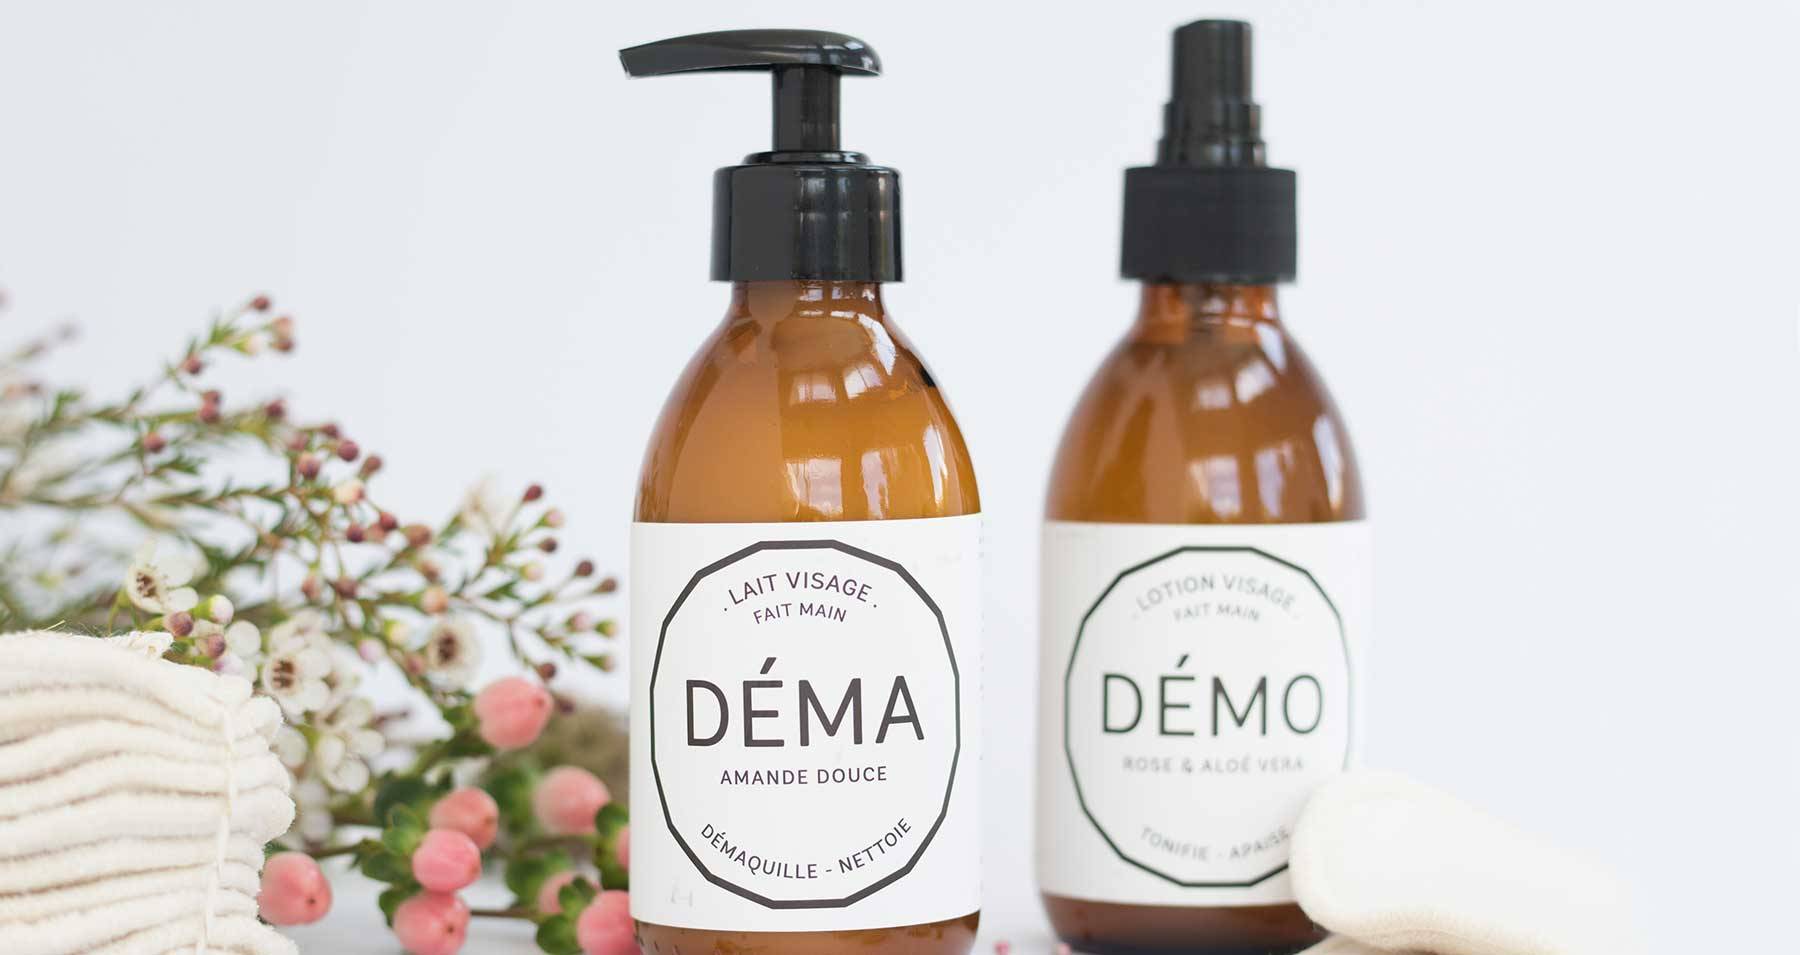 demain-demo-soindesoi-cosmetiquenaturelle-eauflorale-rose